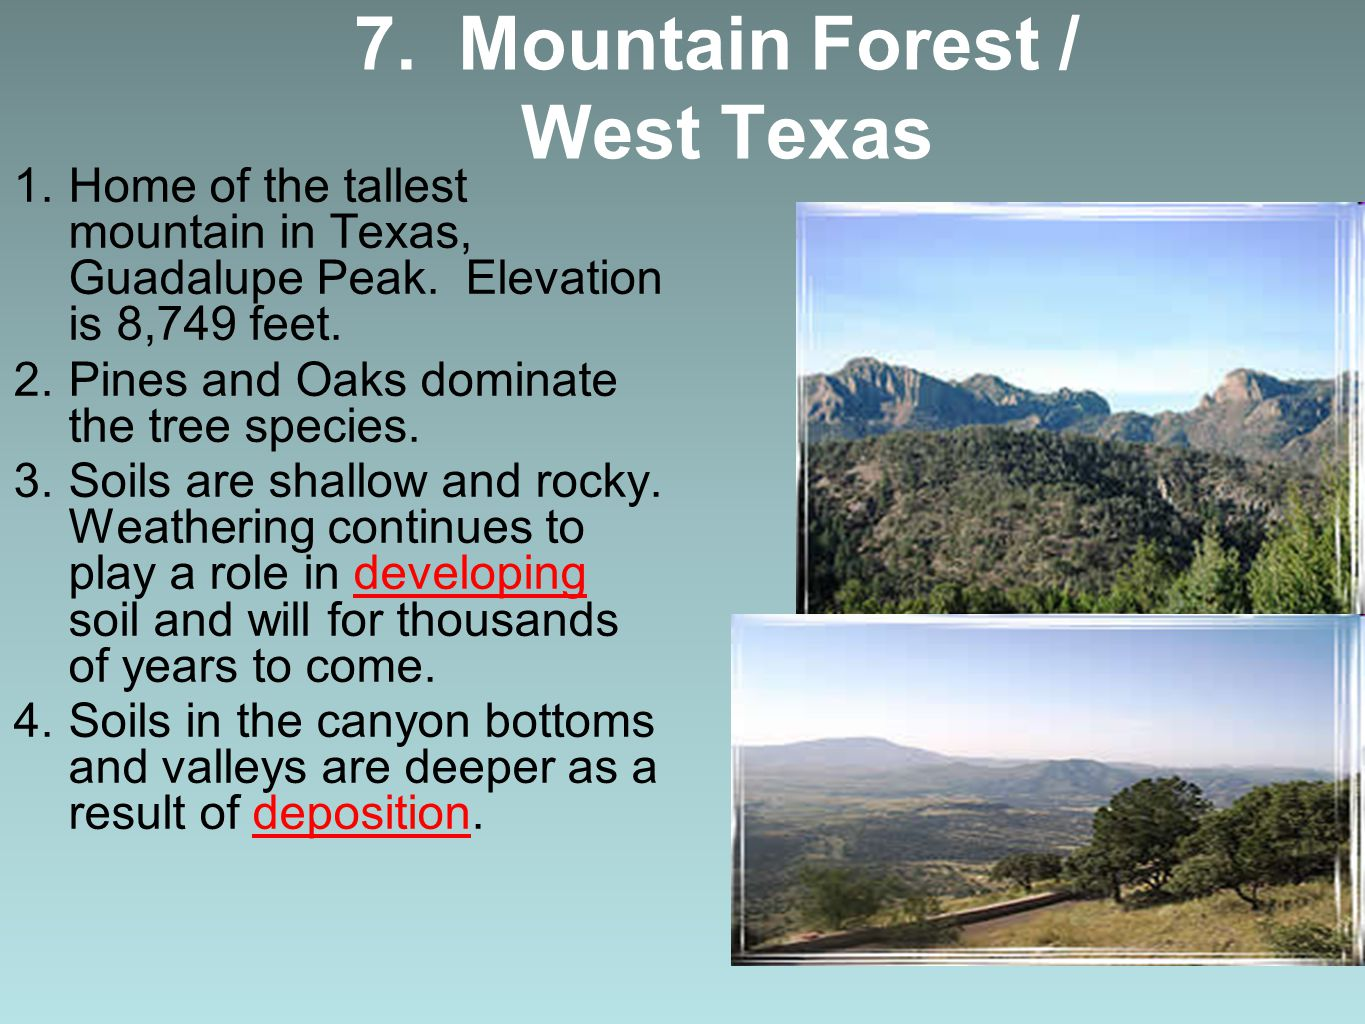 7. Mountain Forest / West Texas